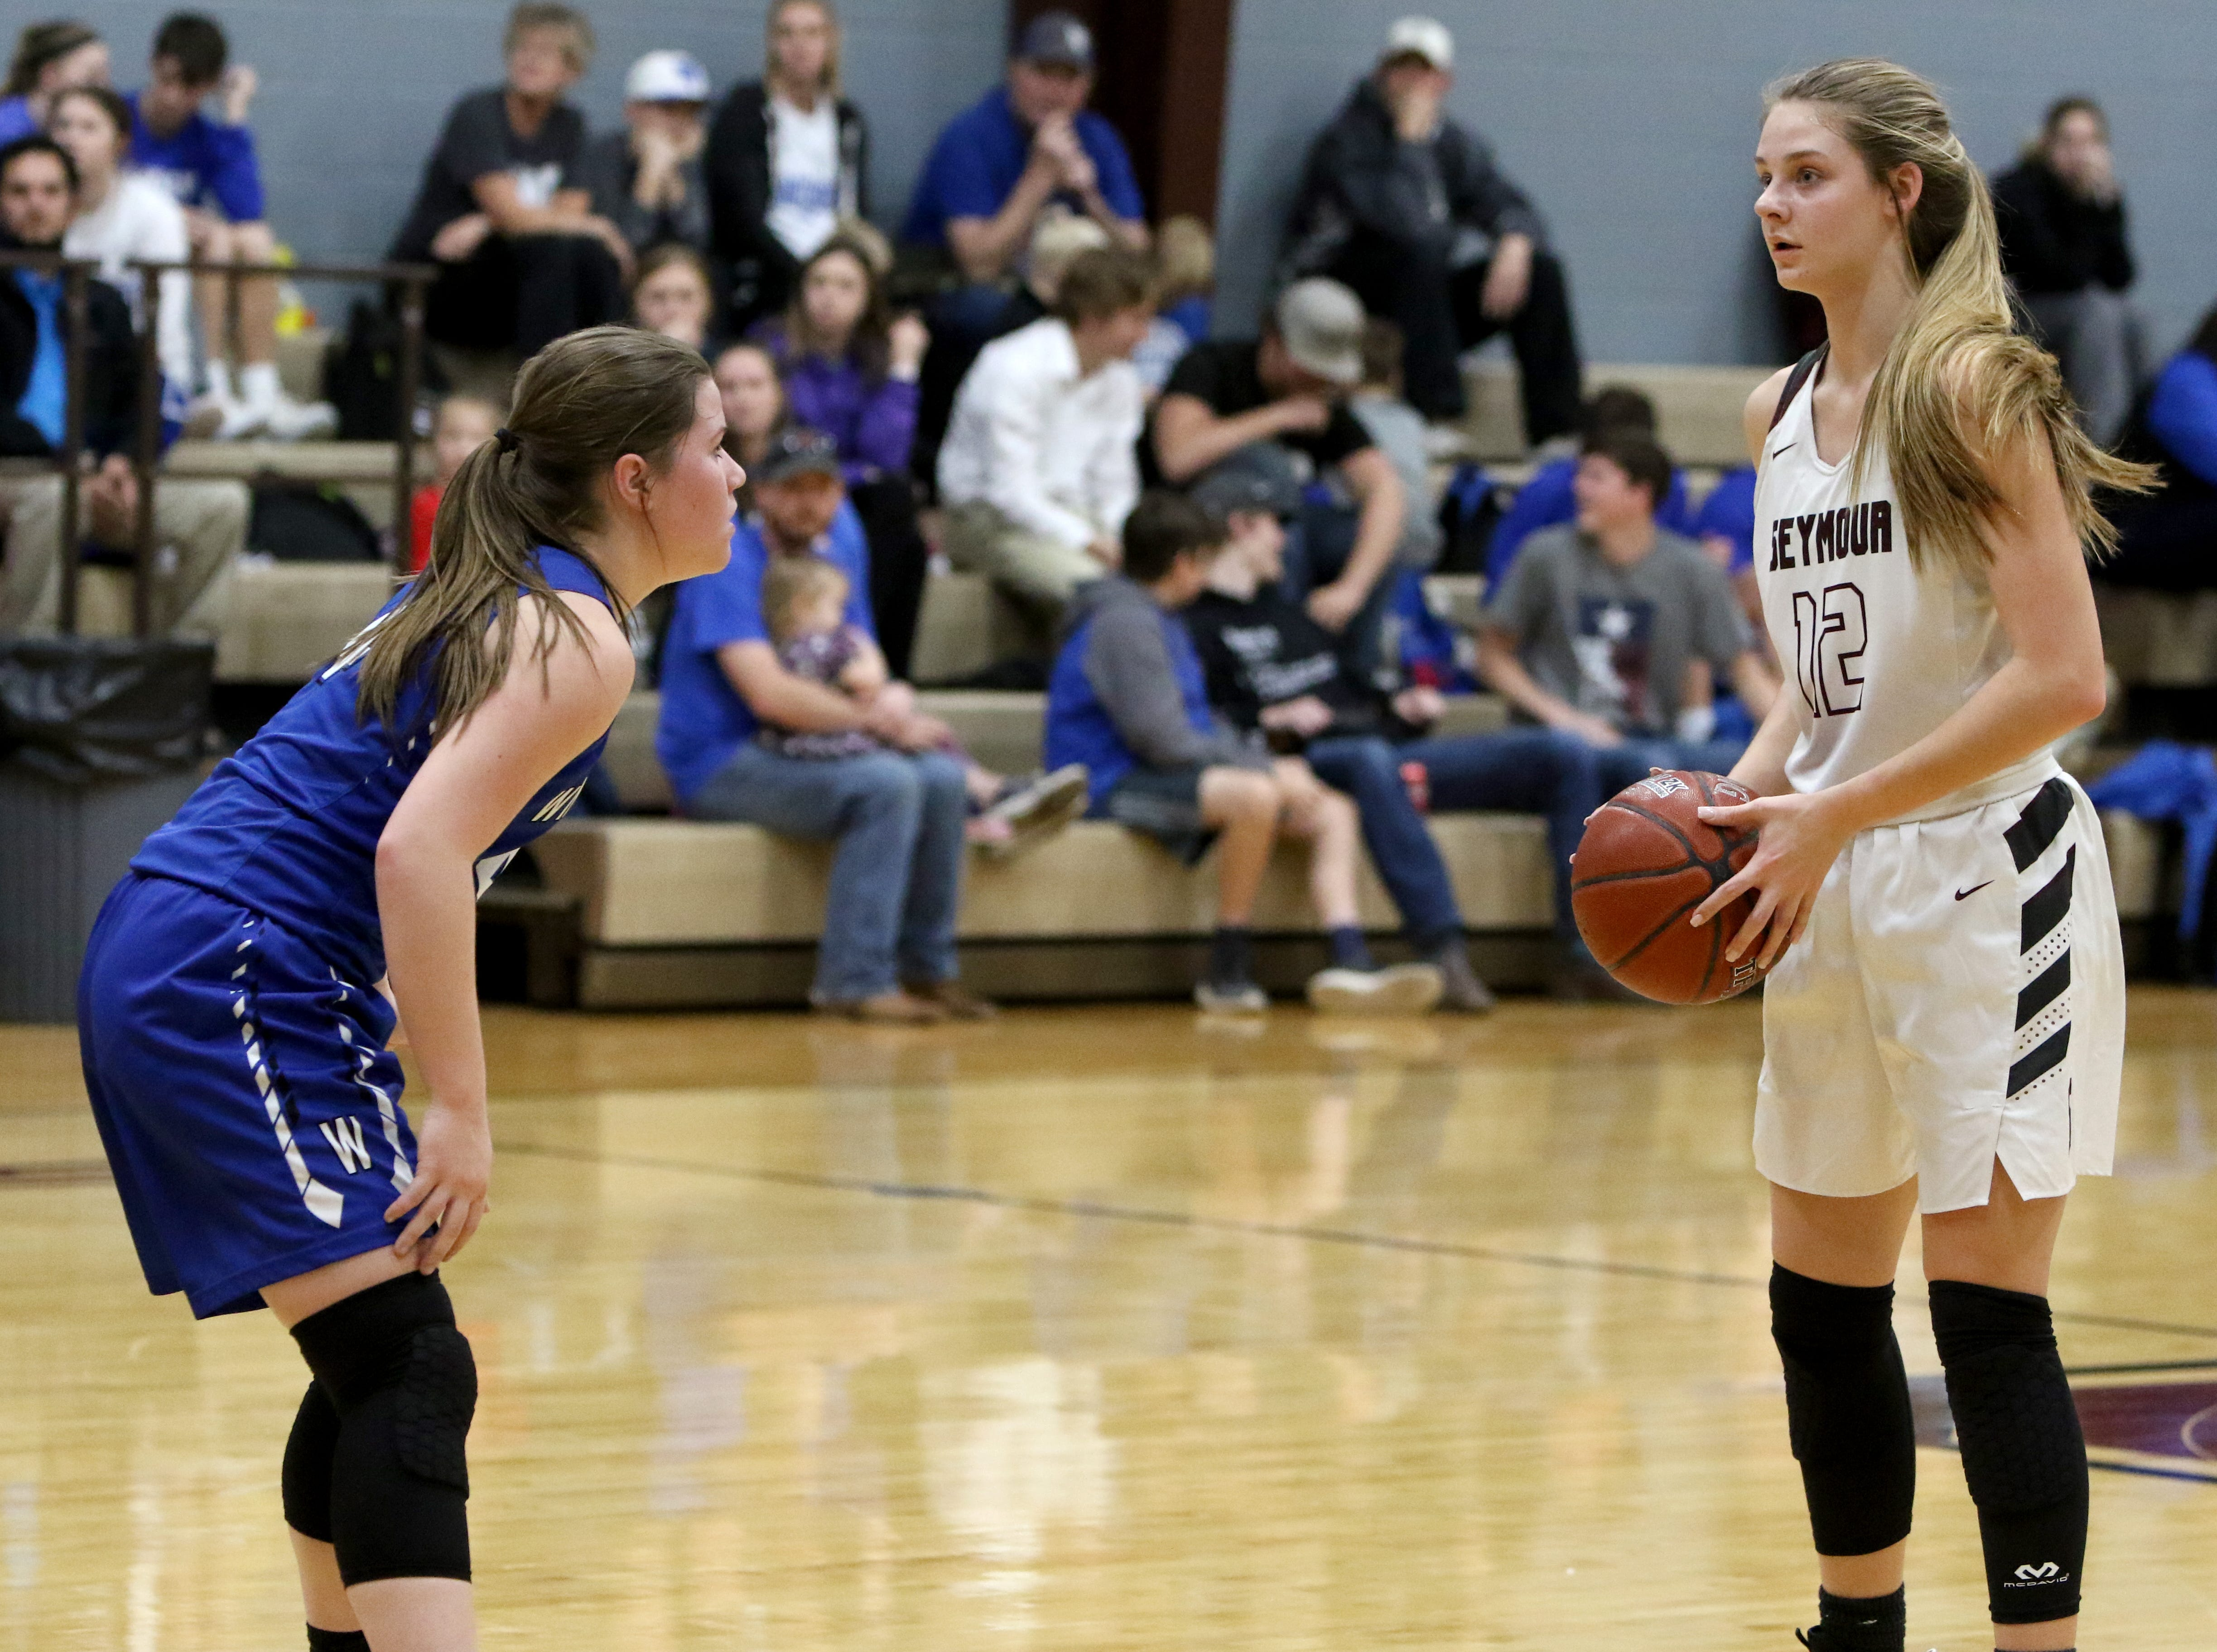 Seymour's Tess Decker holds the ball while guarded Windthorst's Claire Hemmi Tuesday, Jan.8, 2019, in Seymour.